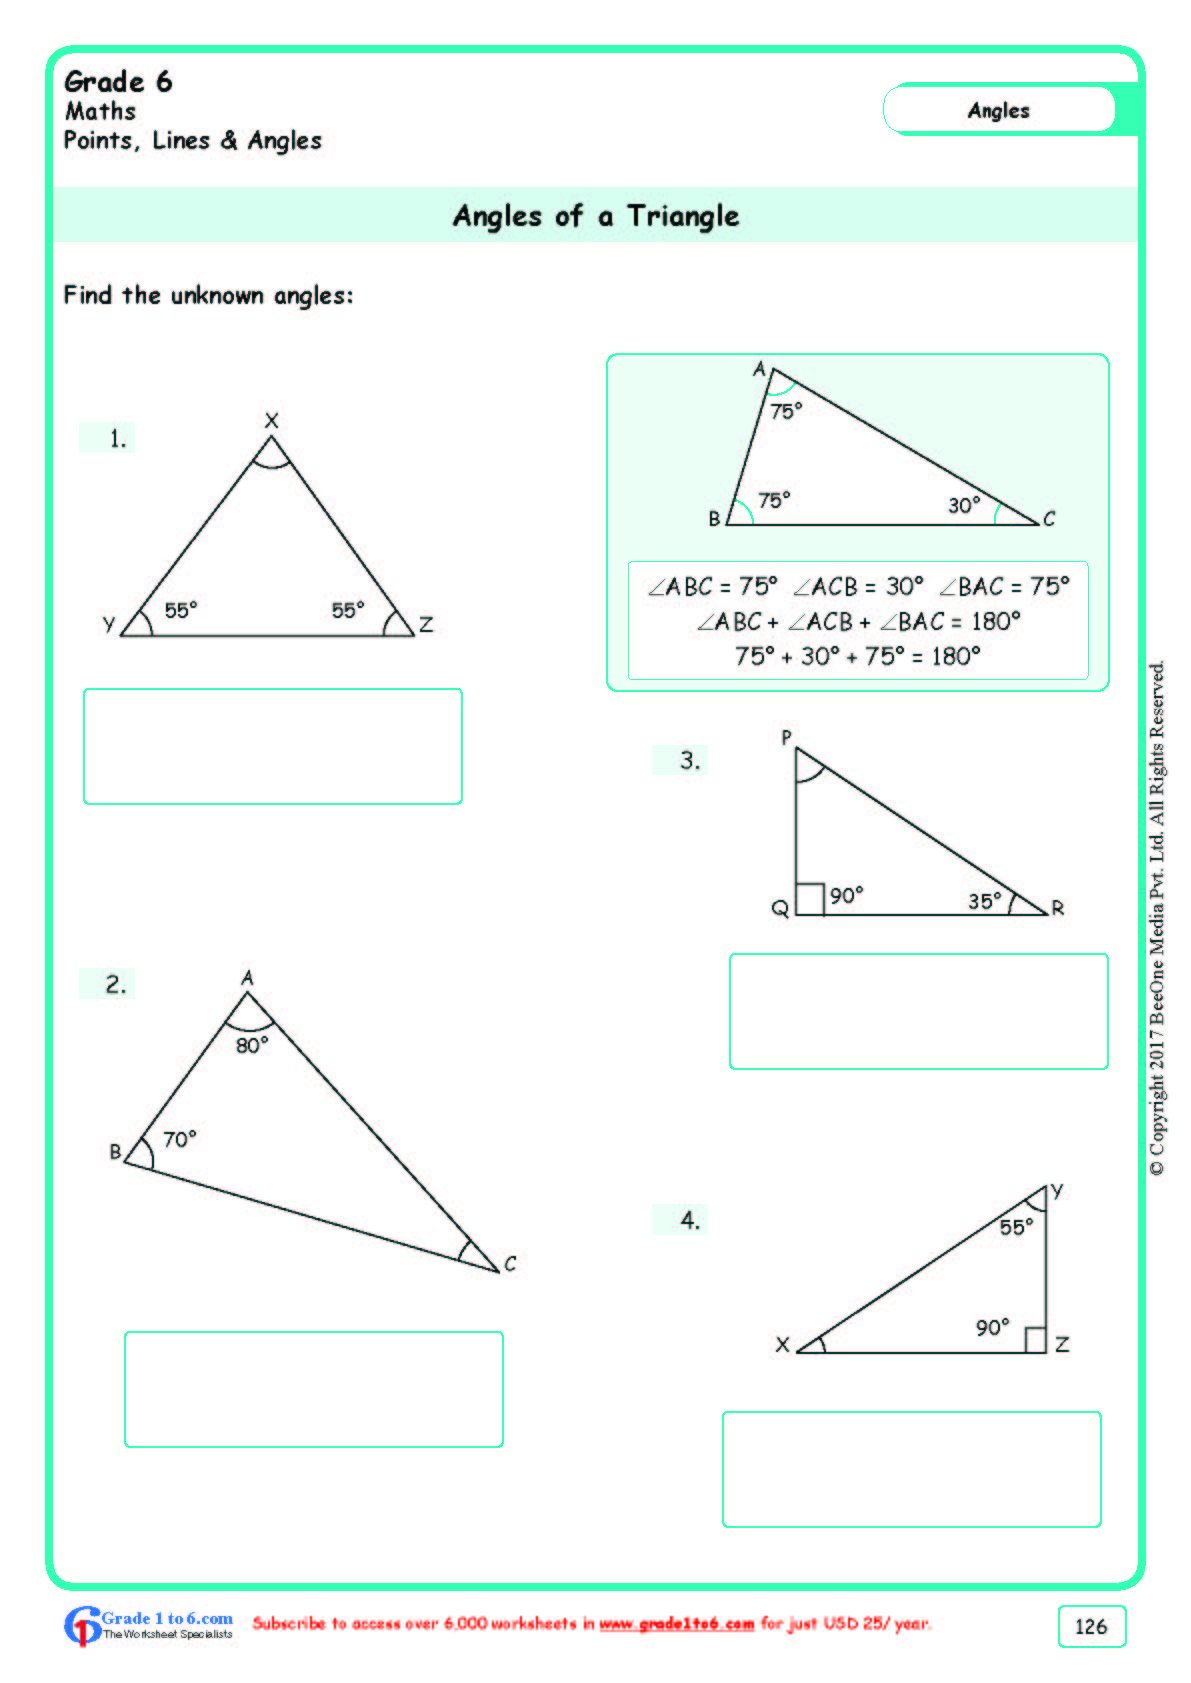 Worksheet Grade 6 Math Angles Of A Triangle In